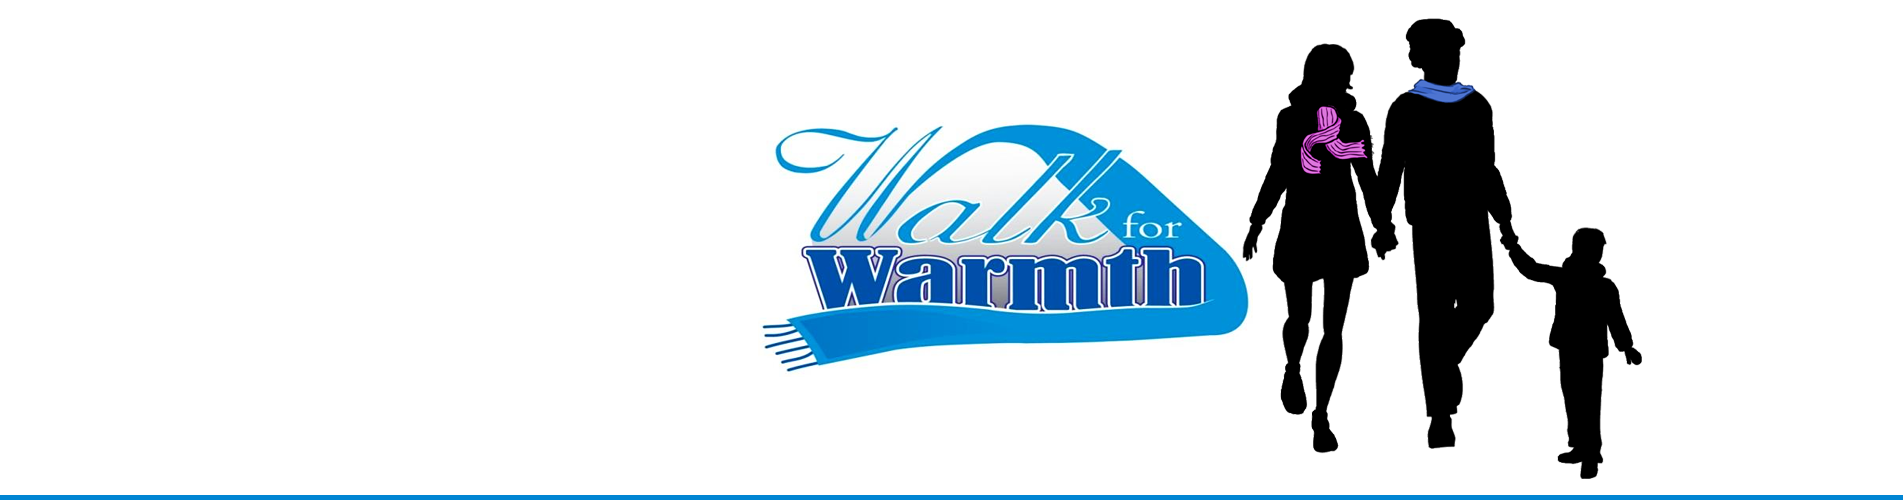 MCOP Walk for Warmth